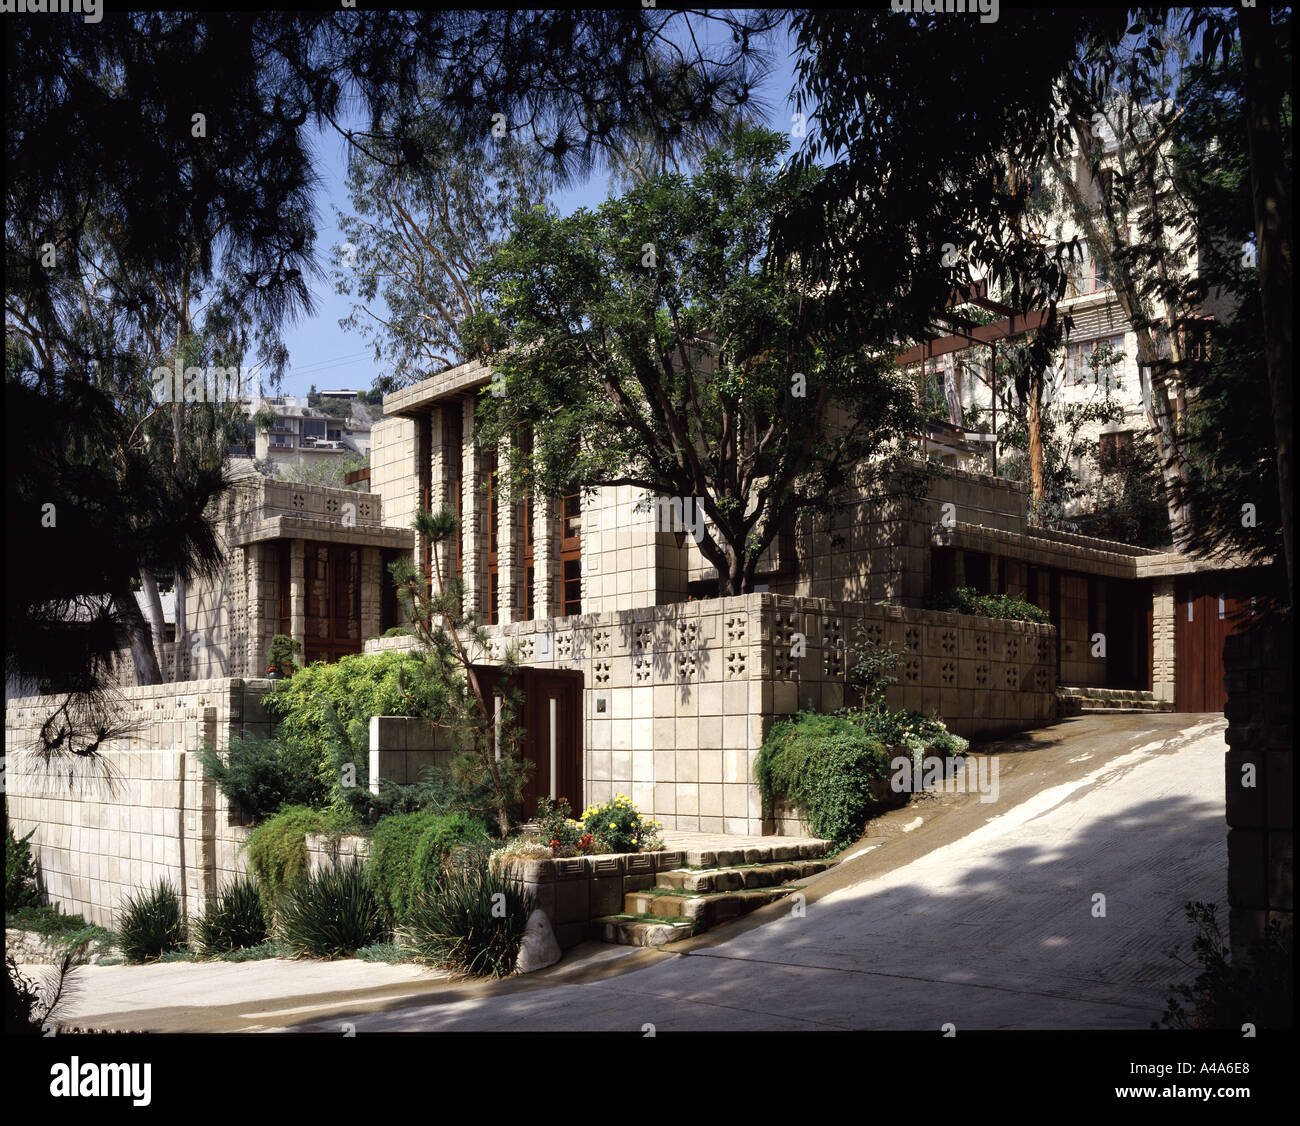 Los Angeles California Houses: The Storer House Los Angeles California Architect Frank